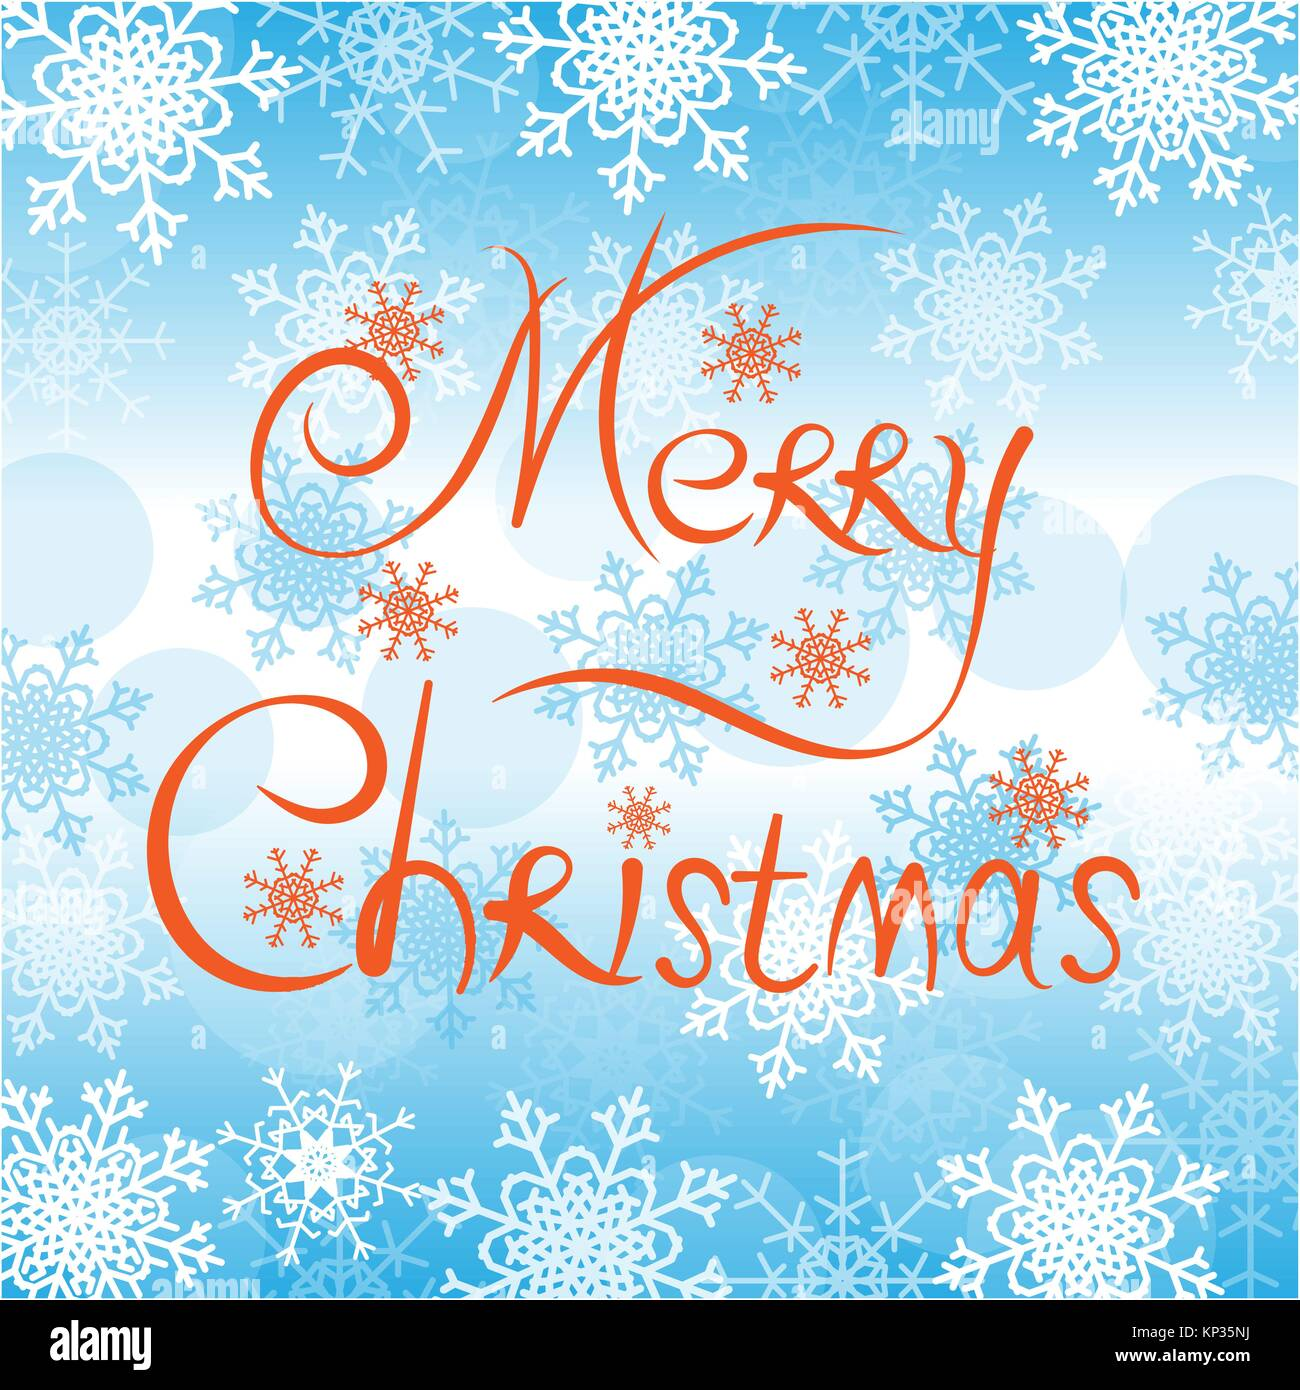 Greetings Christmas Card Stock Vector Images Alamy